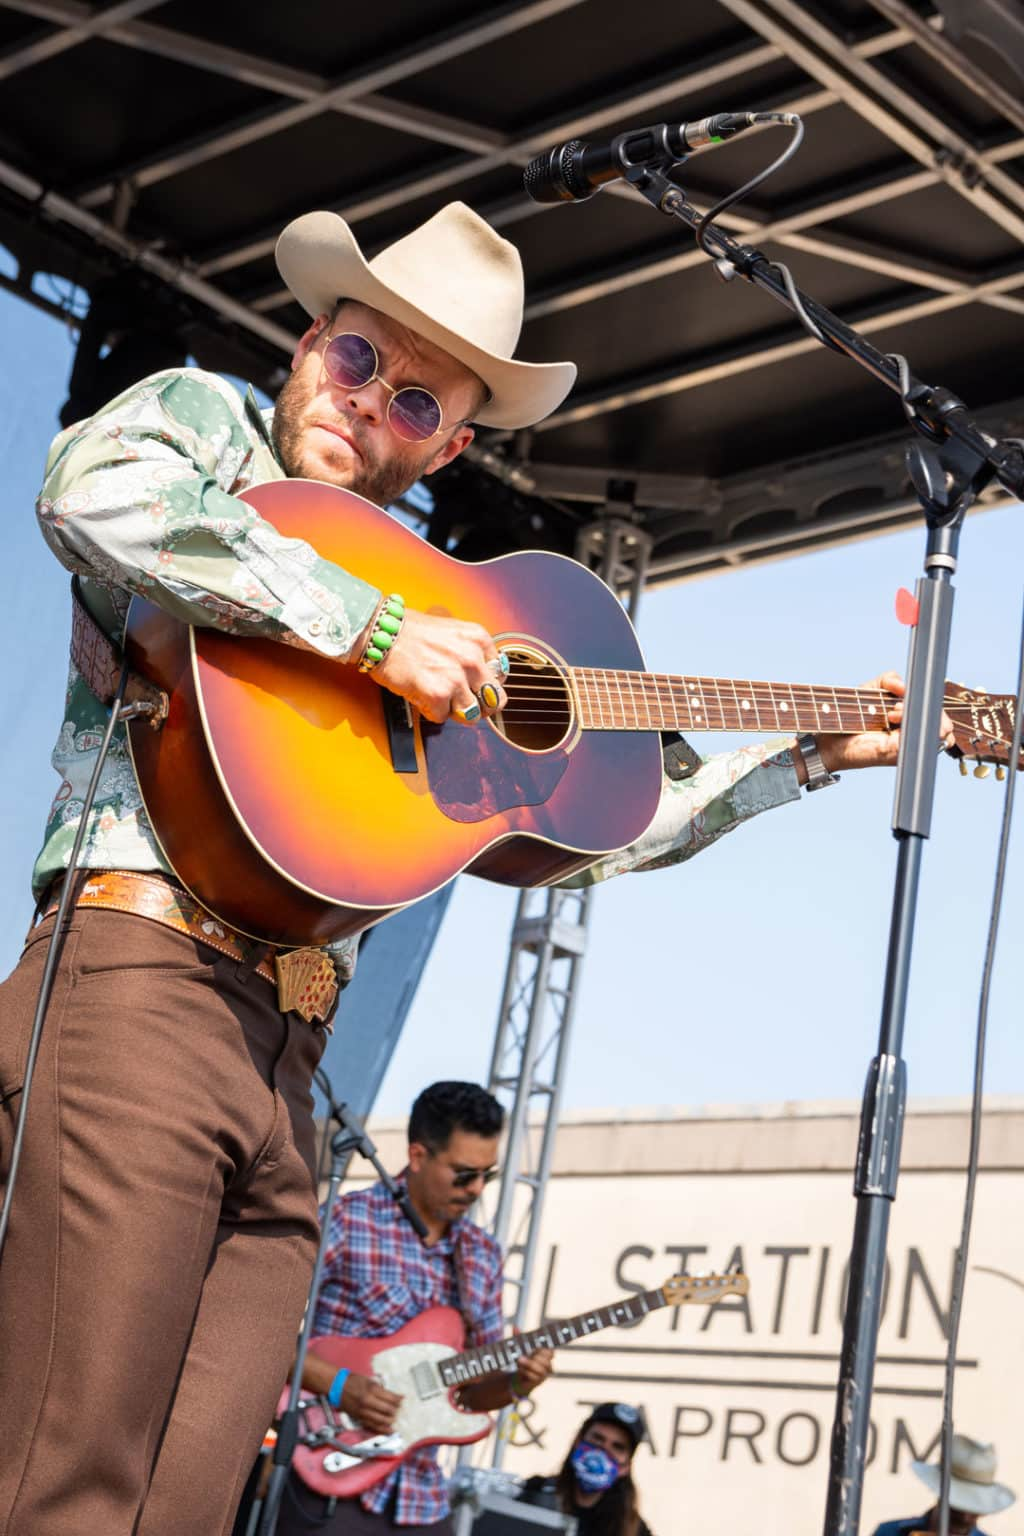 Medium shot of Charlie Crockett holding his acoustic guitar high up as he picks it. He is wearing a cowboy hat, round sunglasses, colorful jewelry, and a belt with white horses on it and a card hand belt buckle.